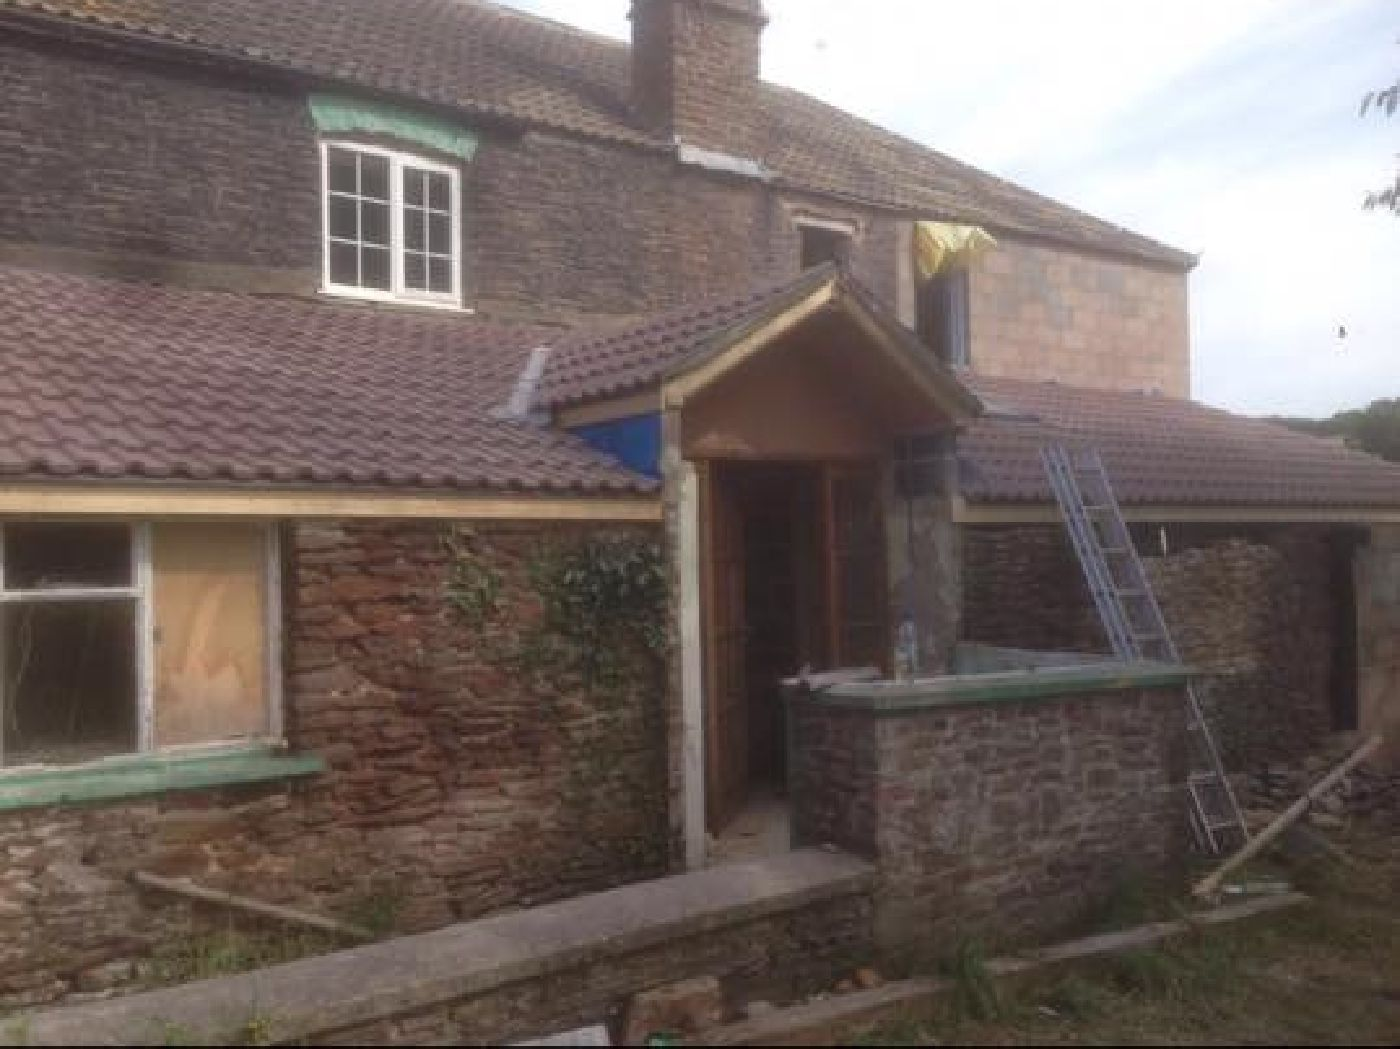 Honiton tiled roof